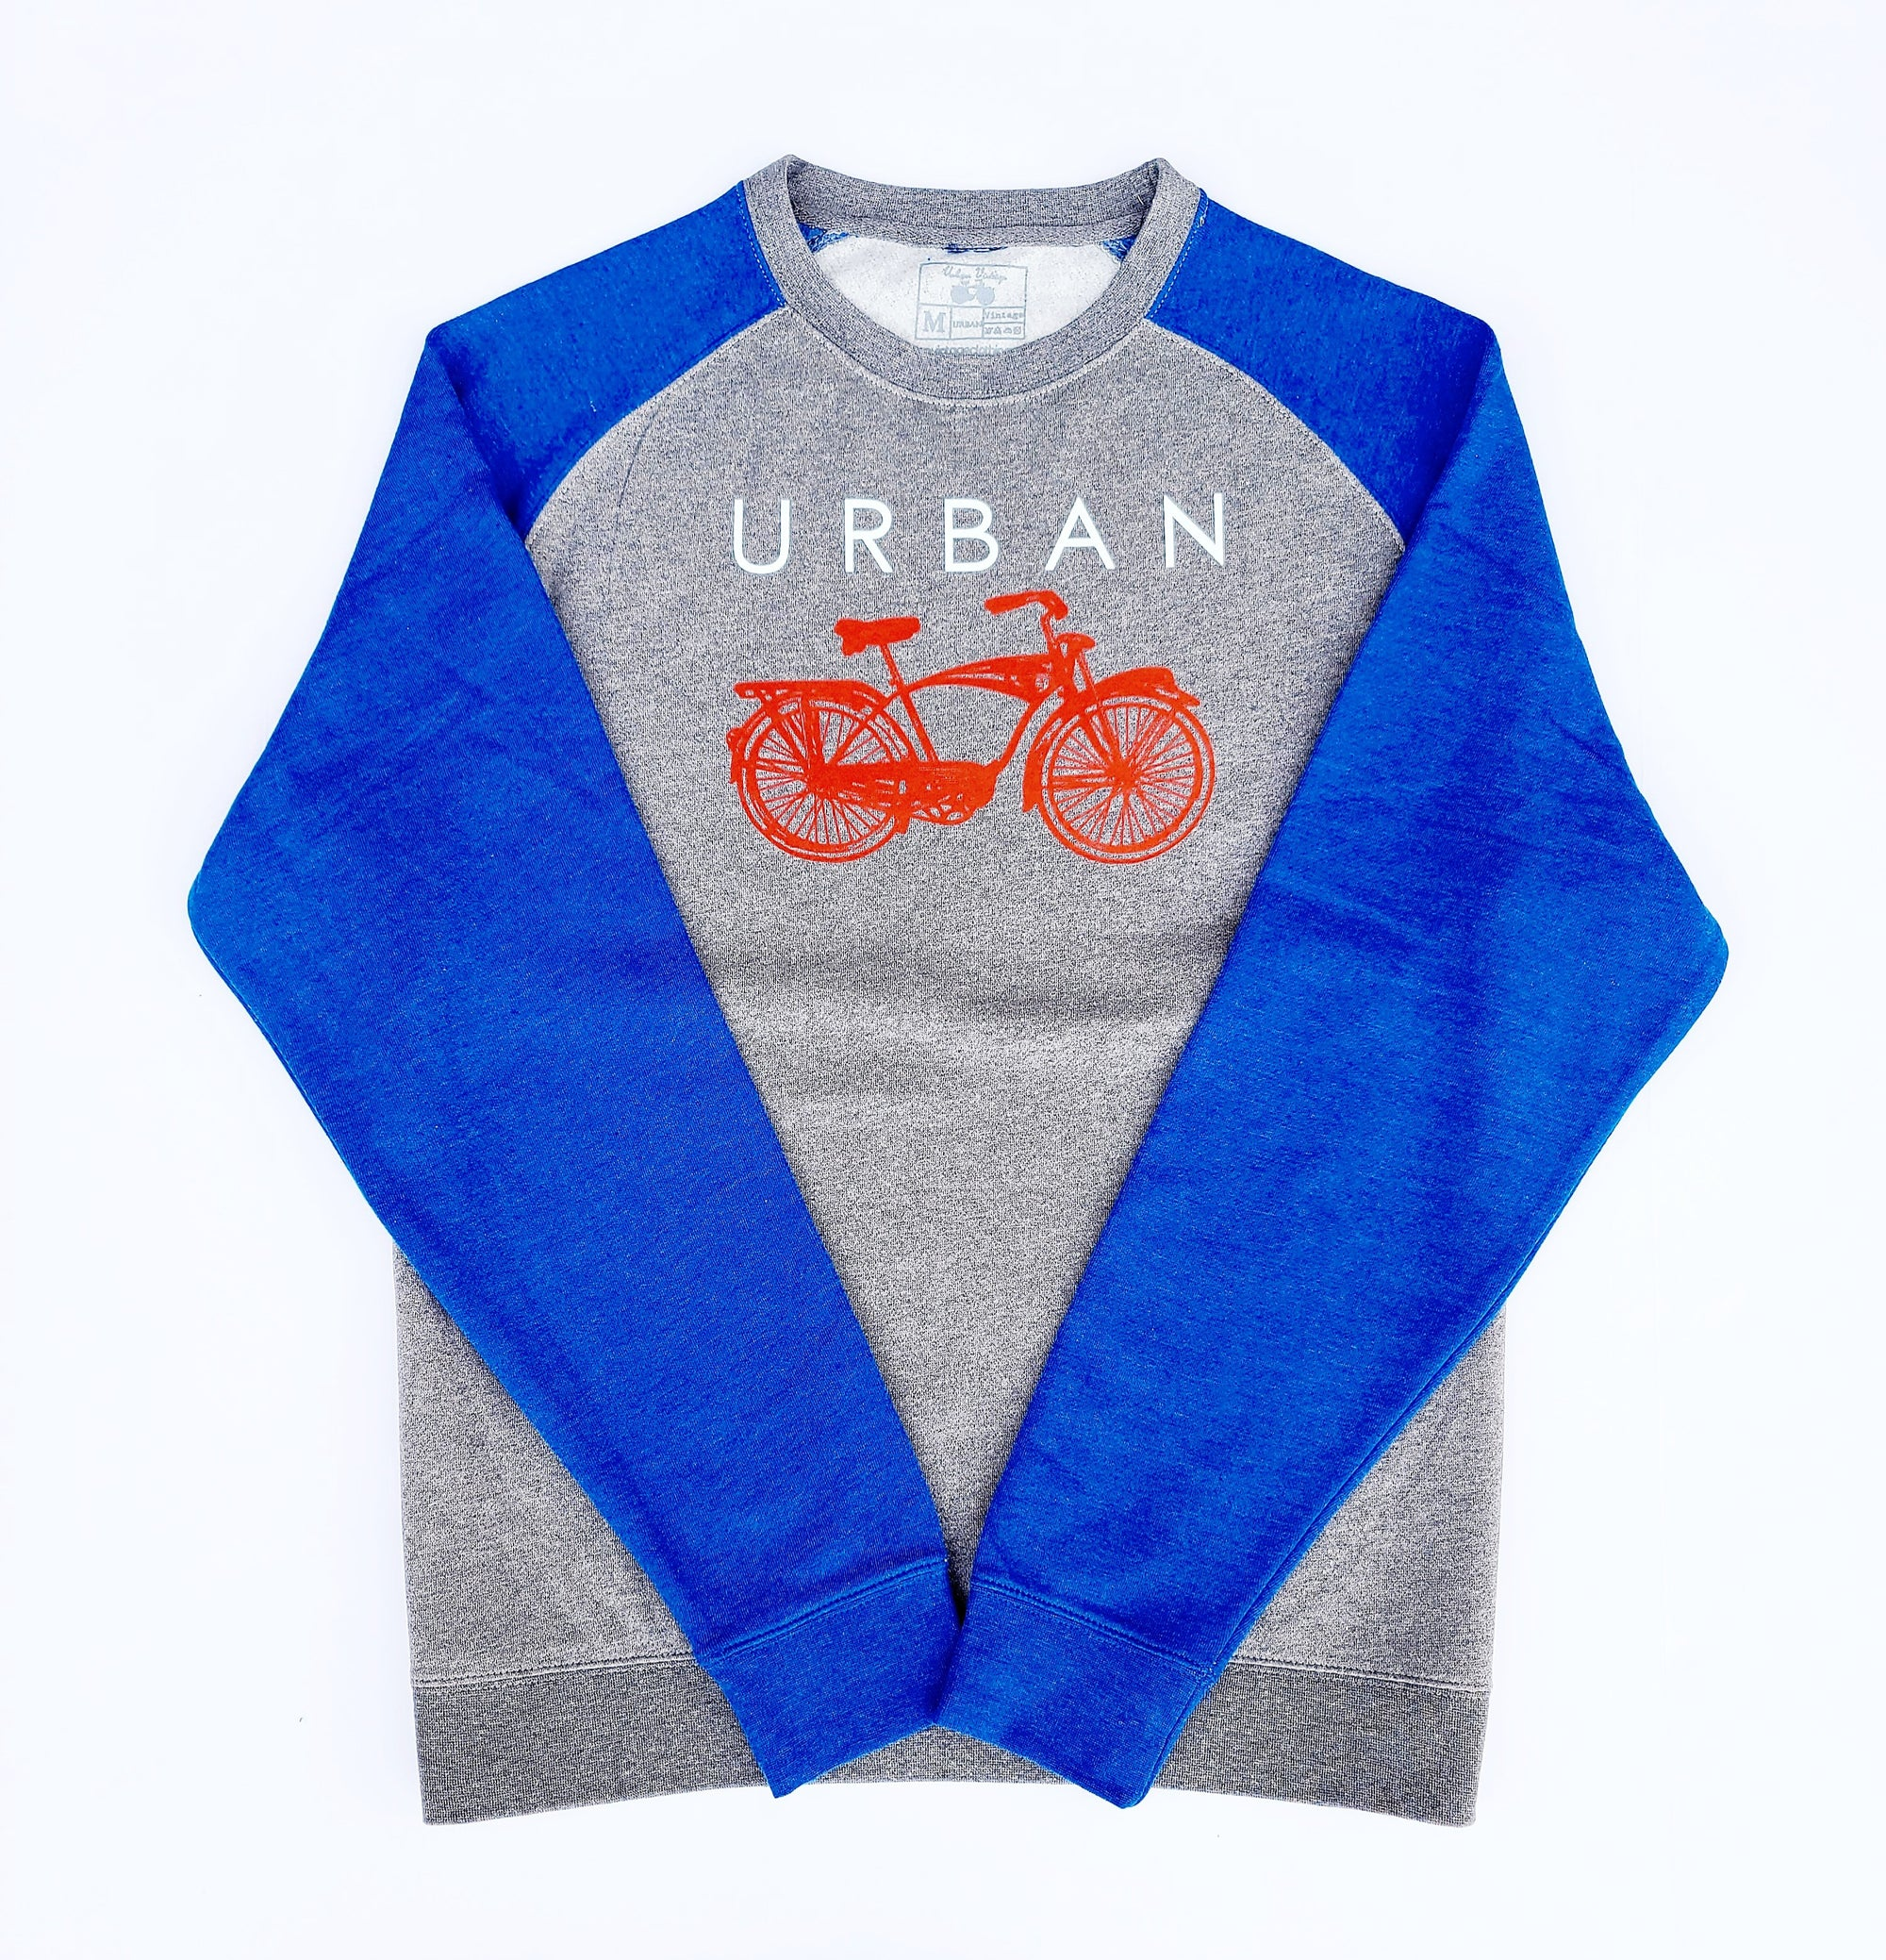 Urban Crew Neck-Royal/Gray/Red/White